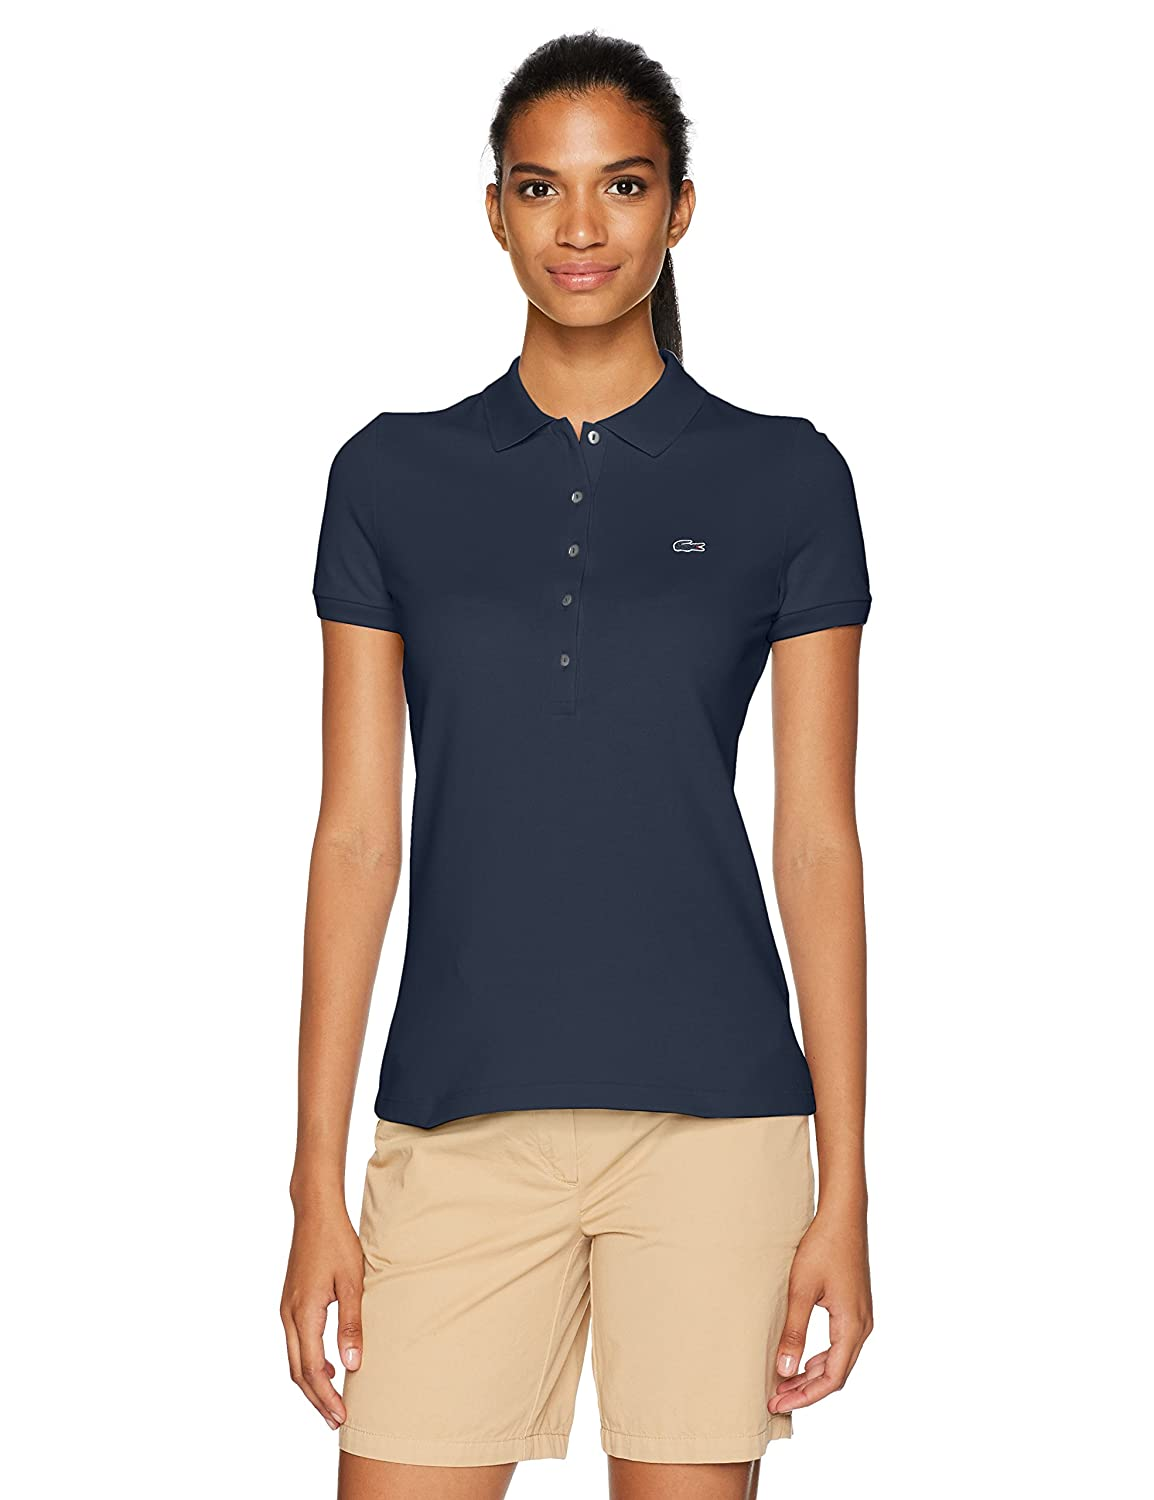 Lacoste Women's Slim Fit Stretch Mini Cotton Pique Polo Lacoste Womens Apparel PF7845-51